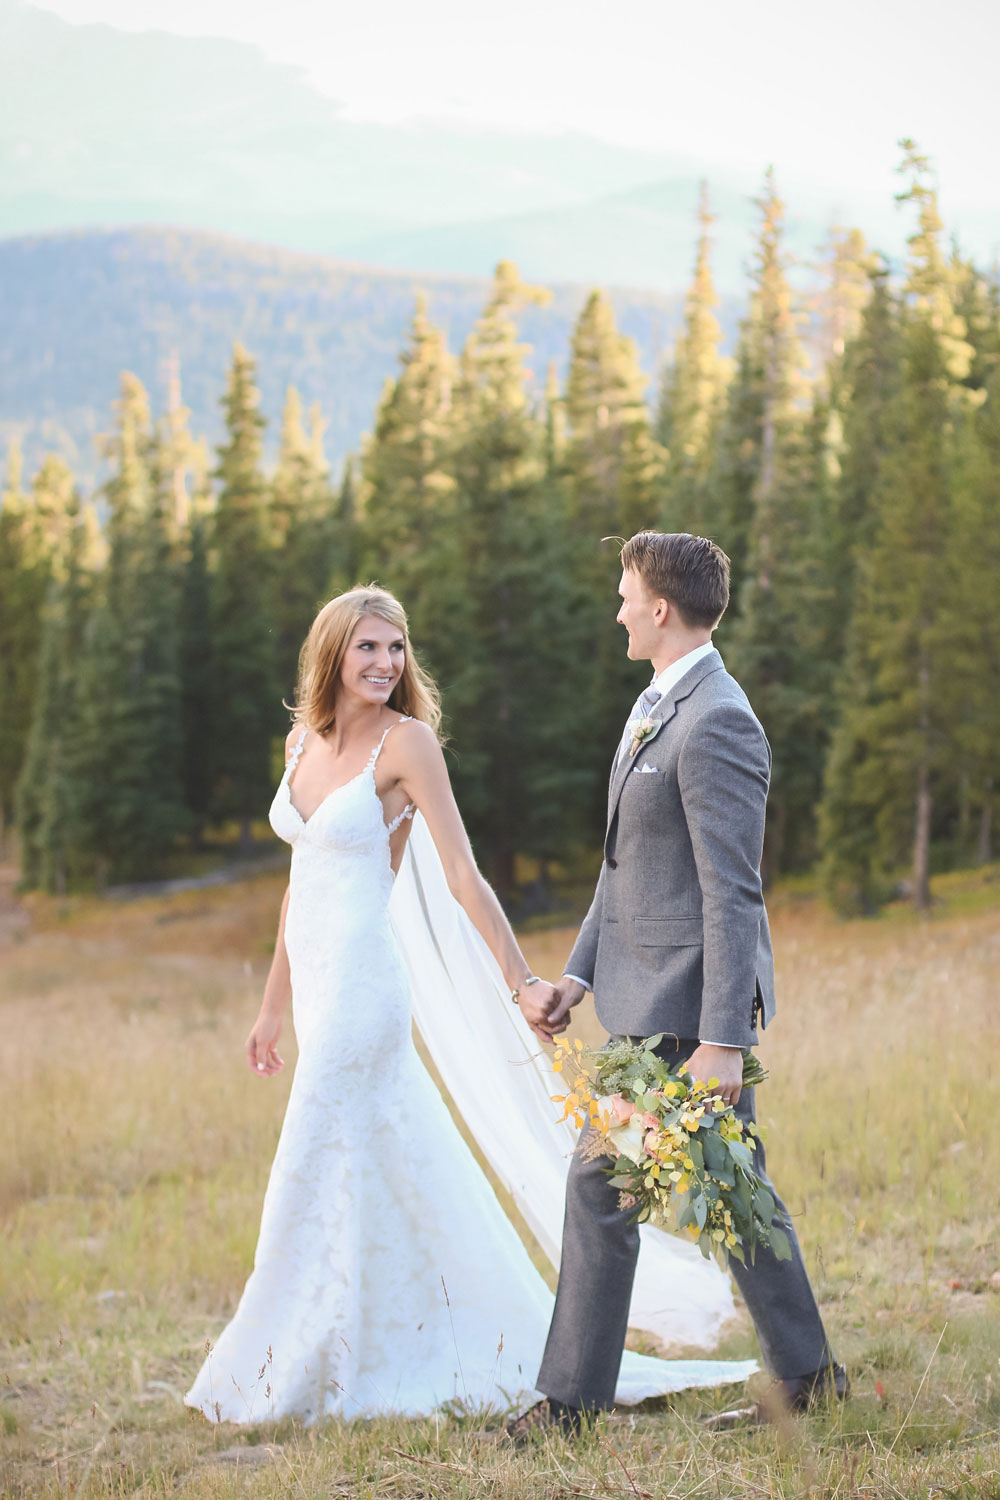 Wedding Love at 11,444 in Colorado